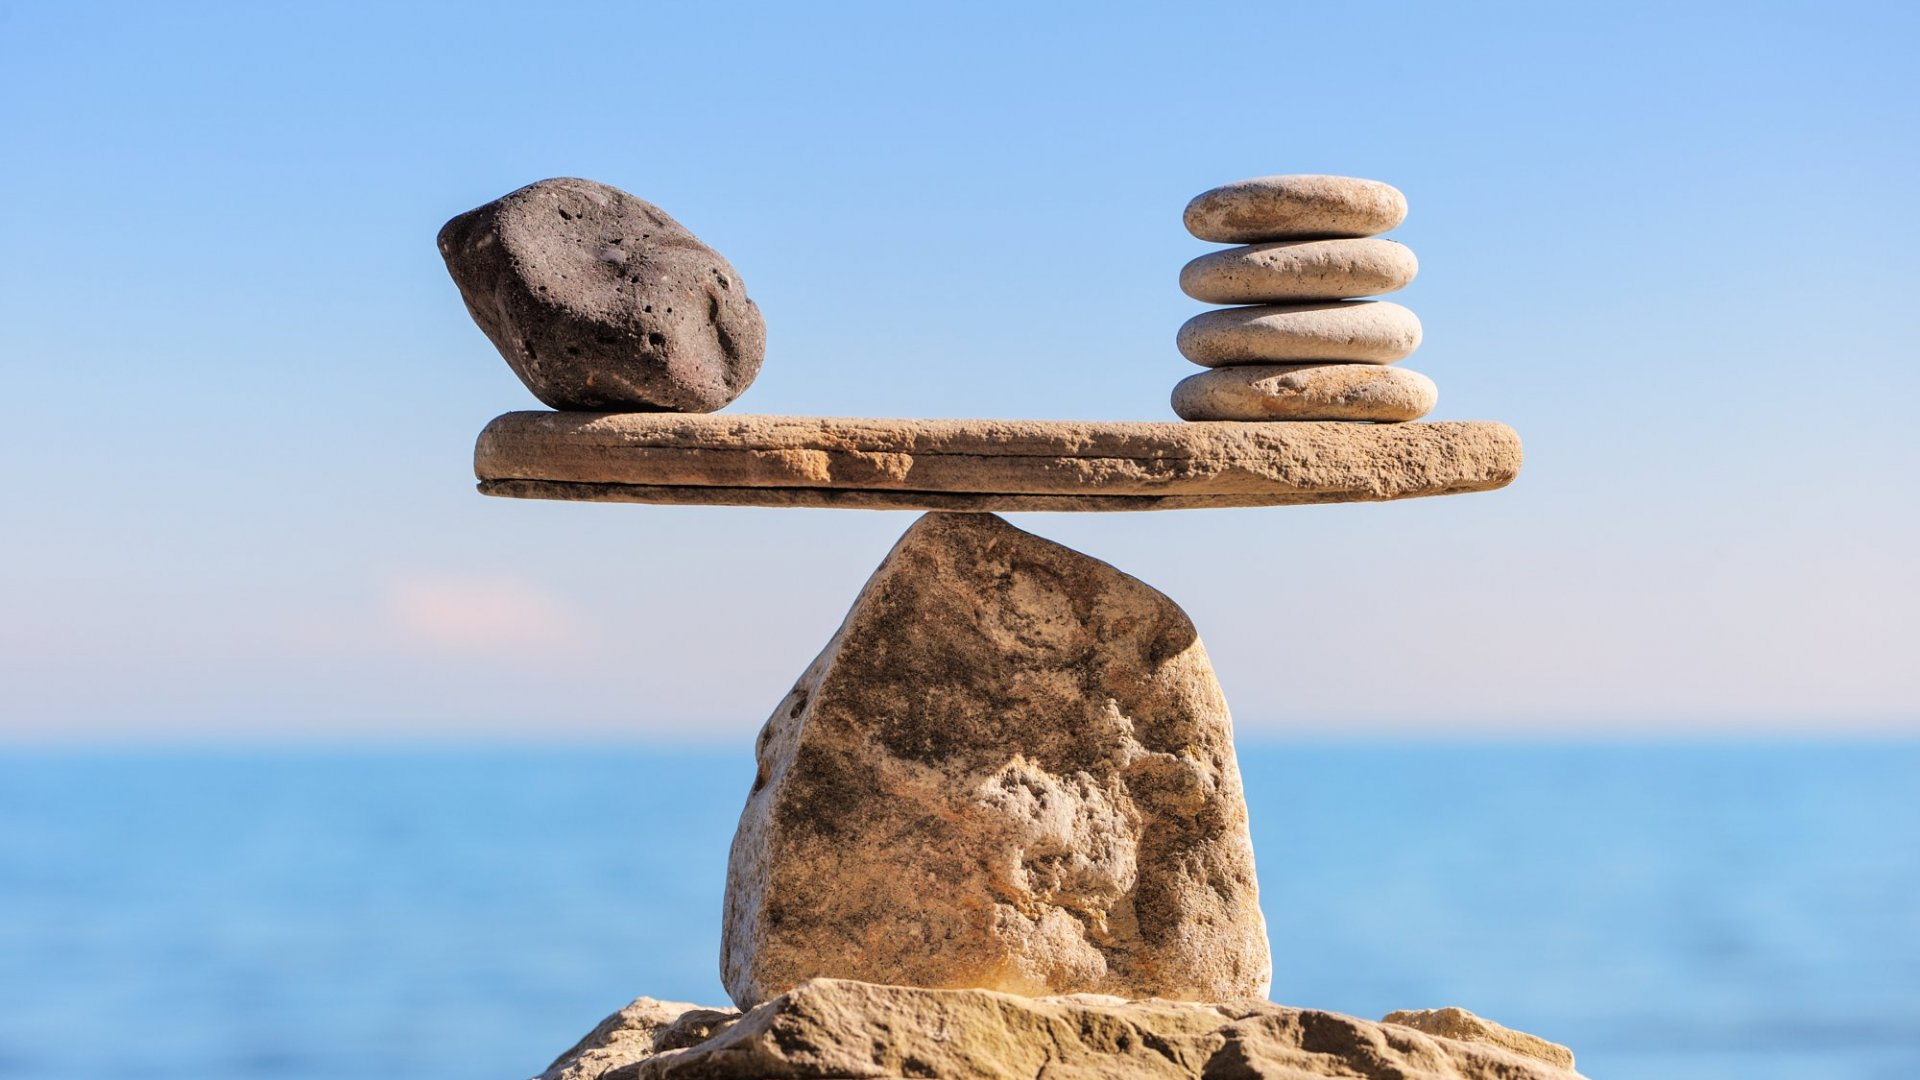 7 Powerful Habits for a Balanced, Mindful Life